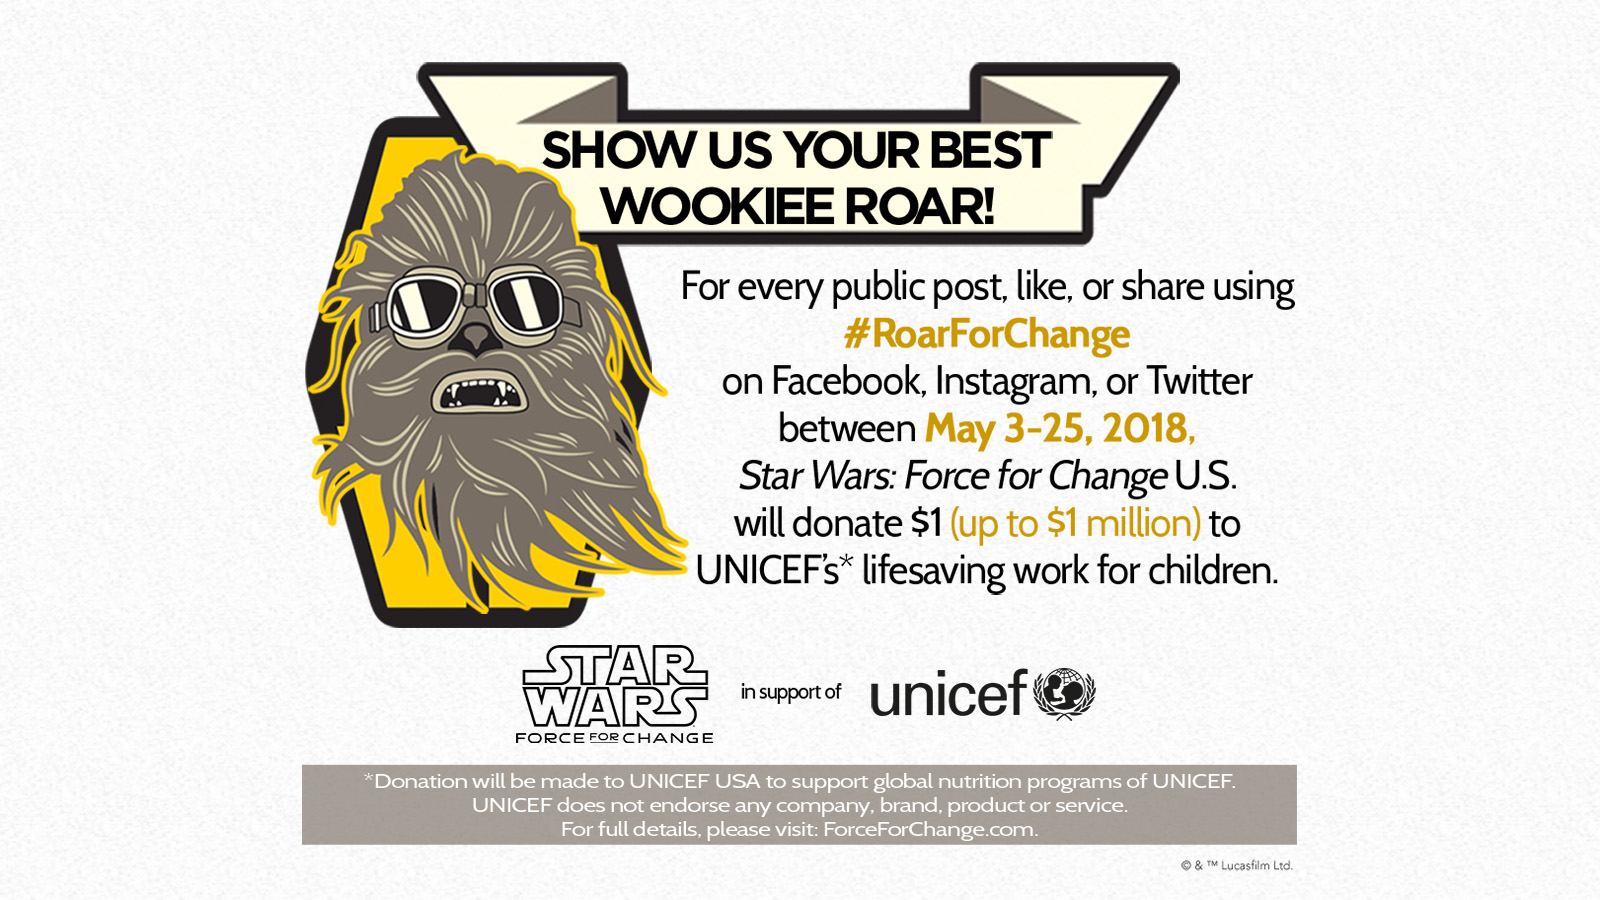 Chewbacca's roar for change